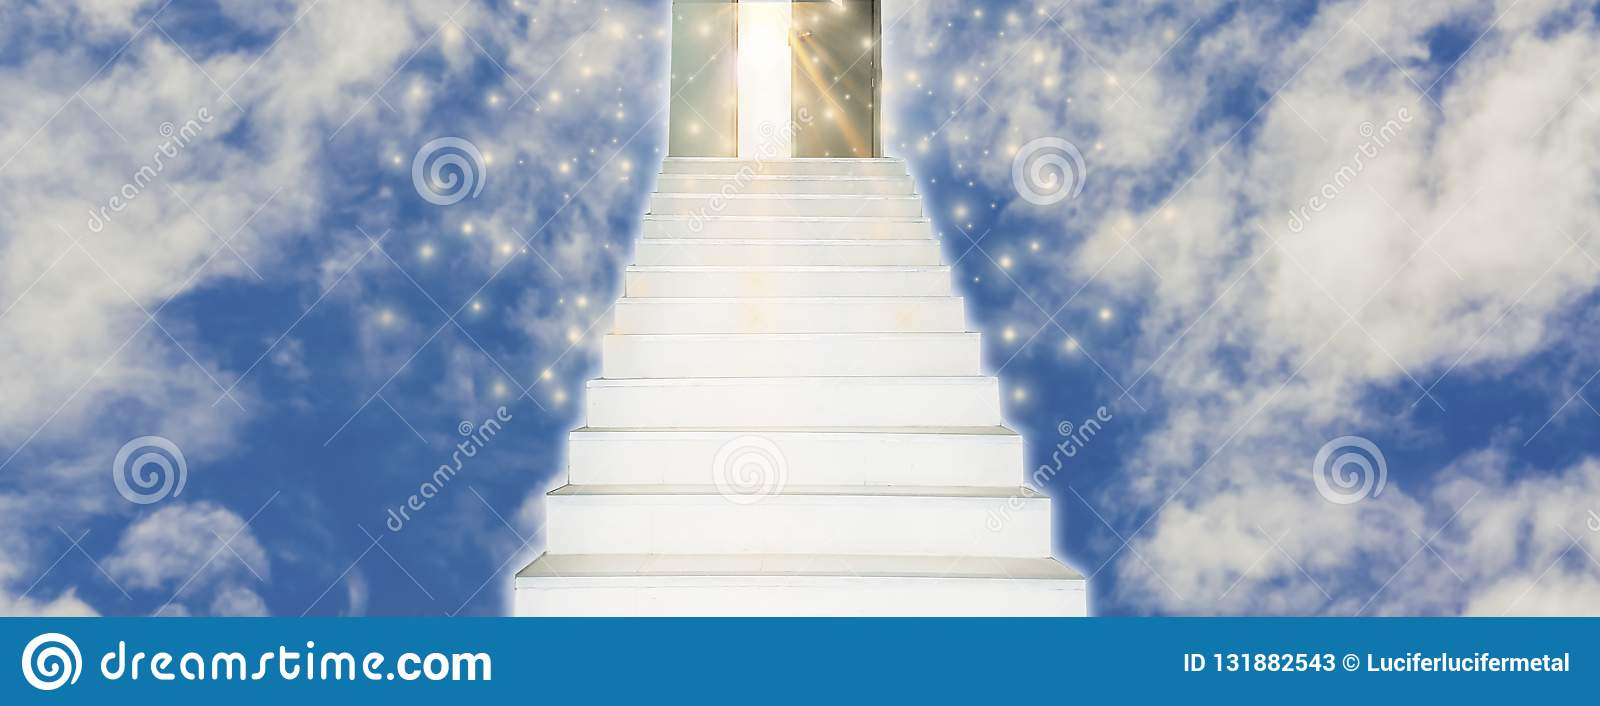 Spiritual Walk to Heaven With stairs leading straight into door